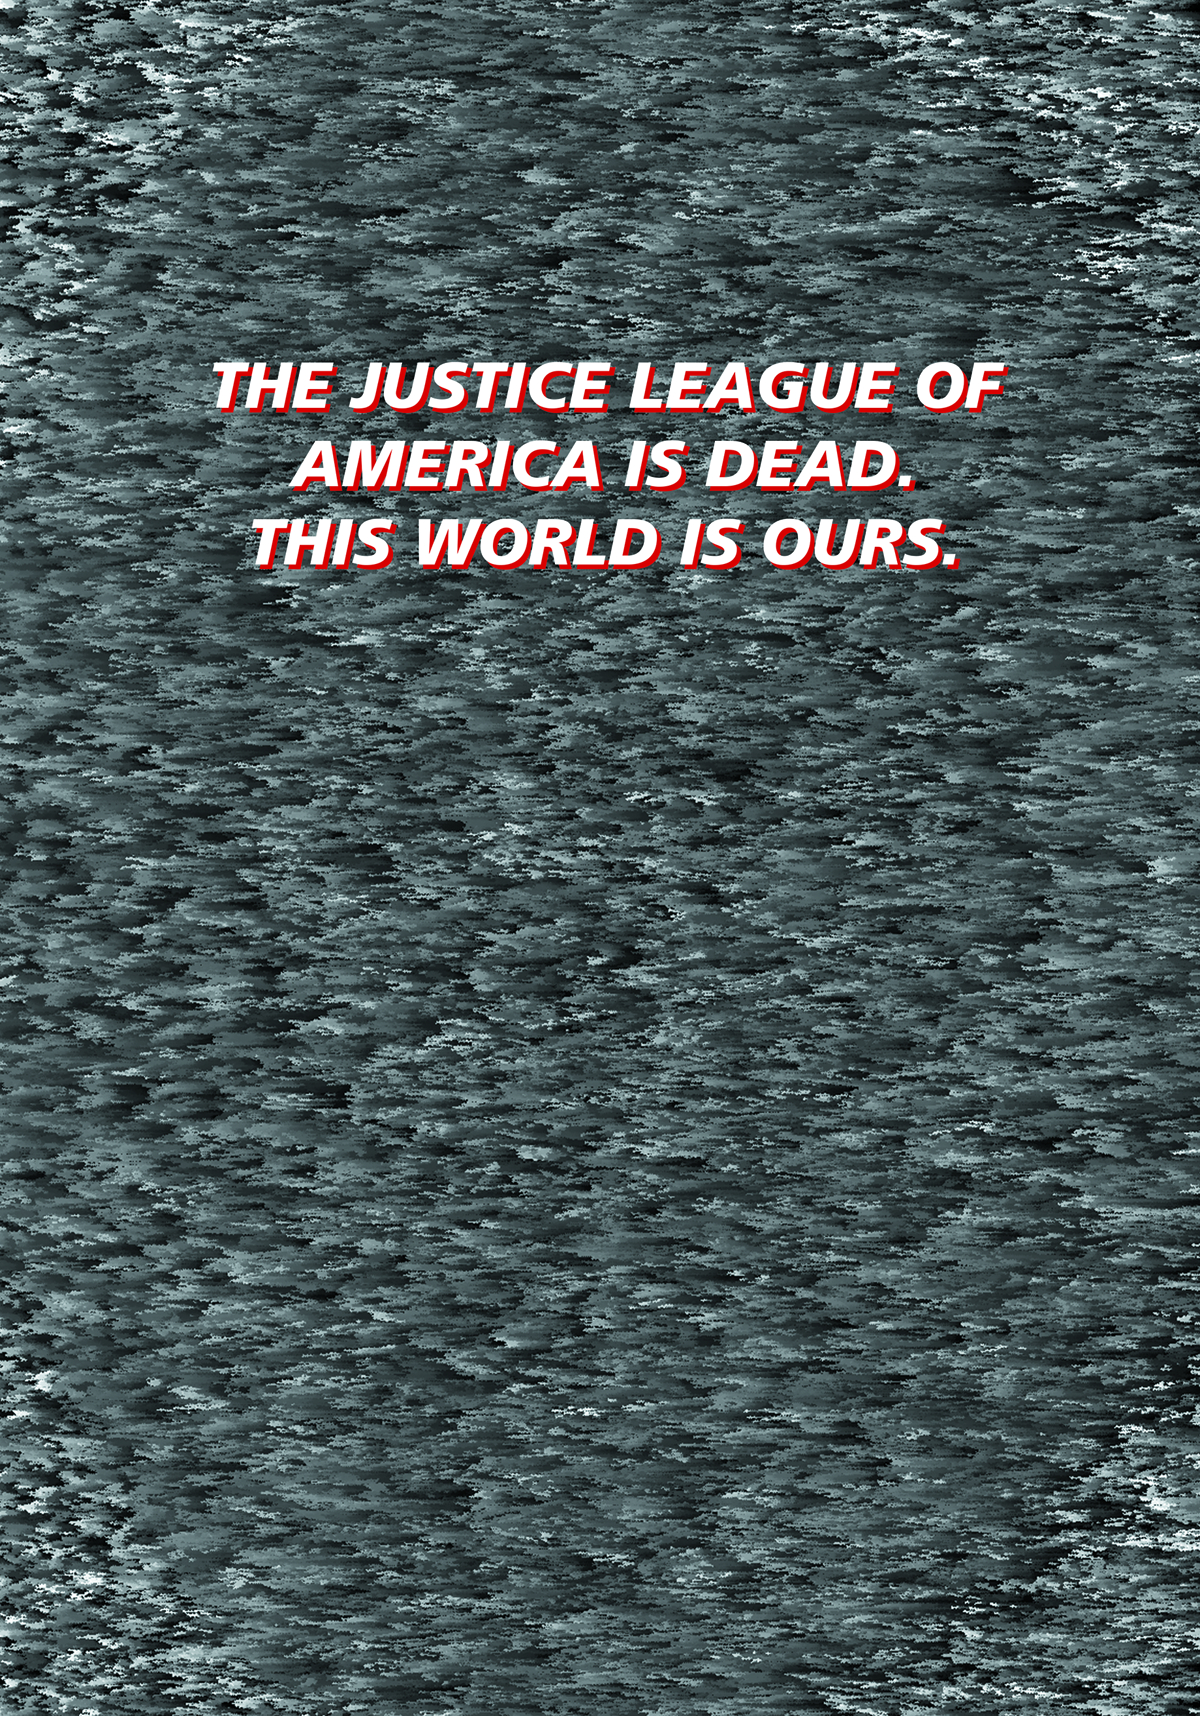 JUSTICE LEAGUE OF AMERICA #8 (EVIL)